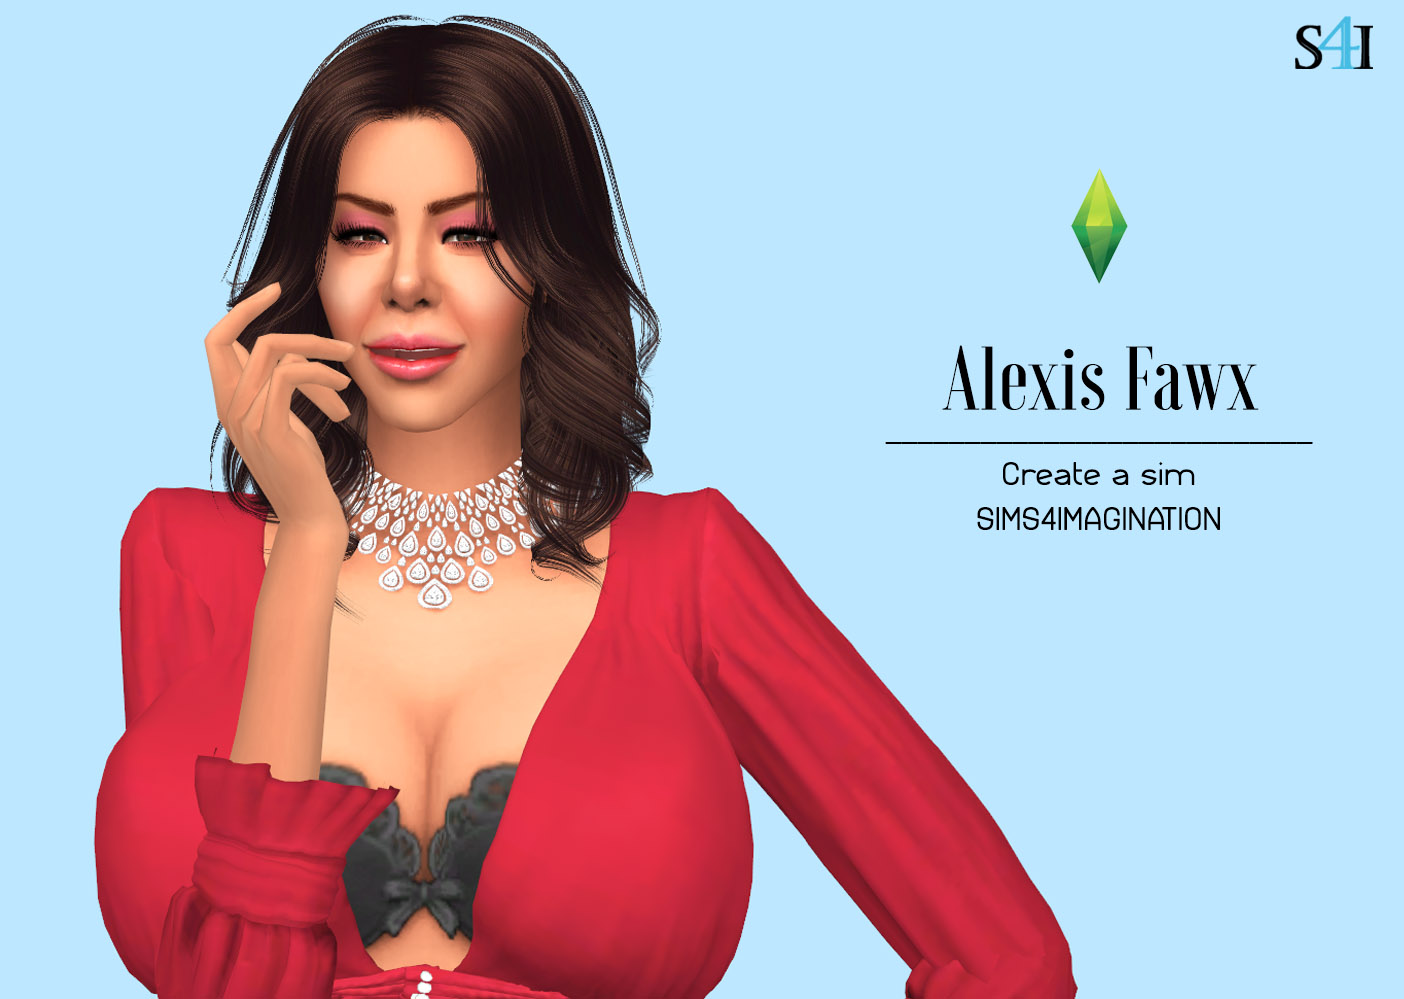 My Sims 4 CAS: Alexis Fawx (Patreon)